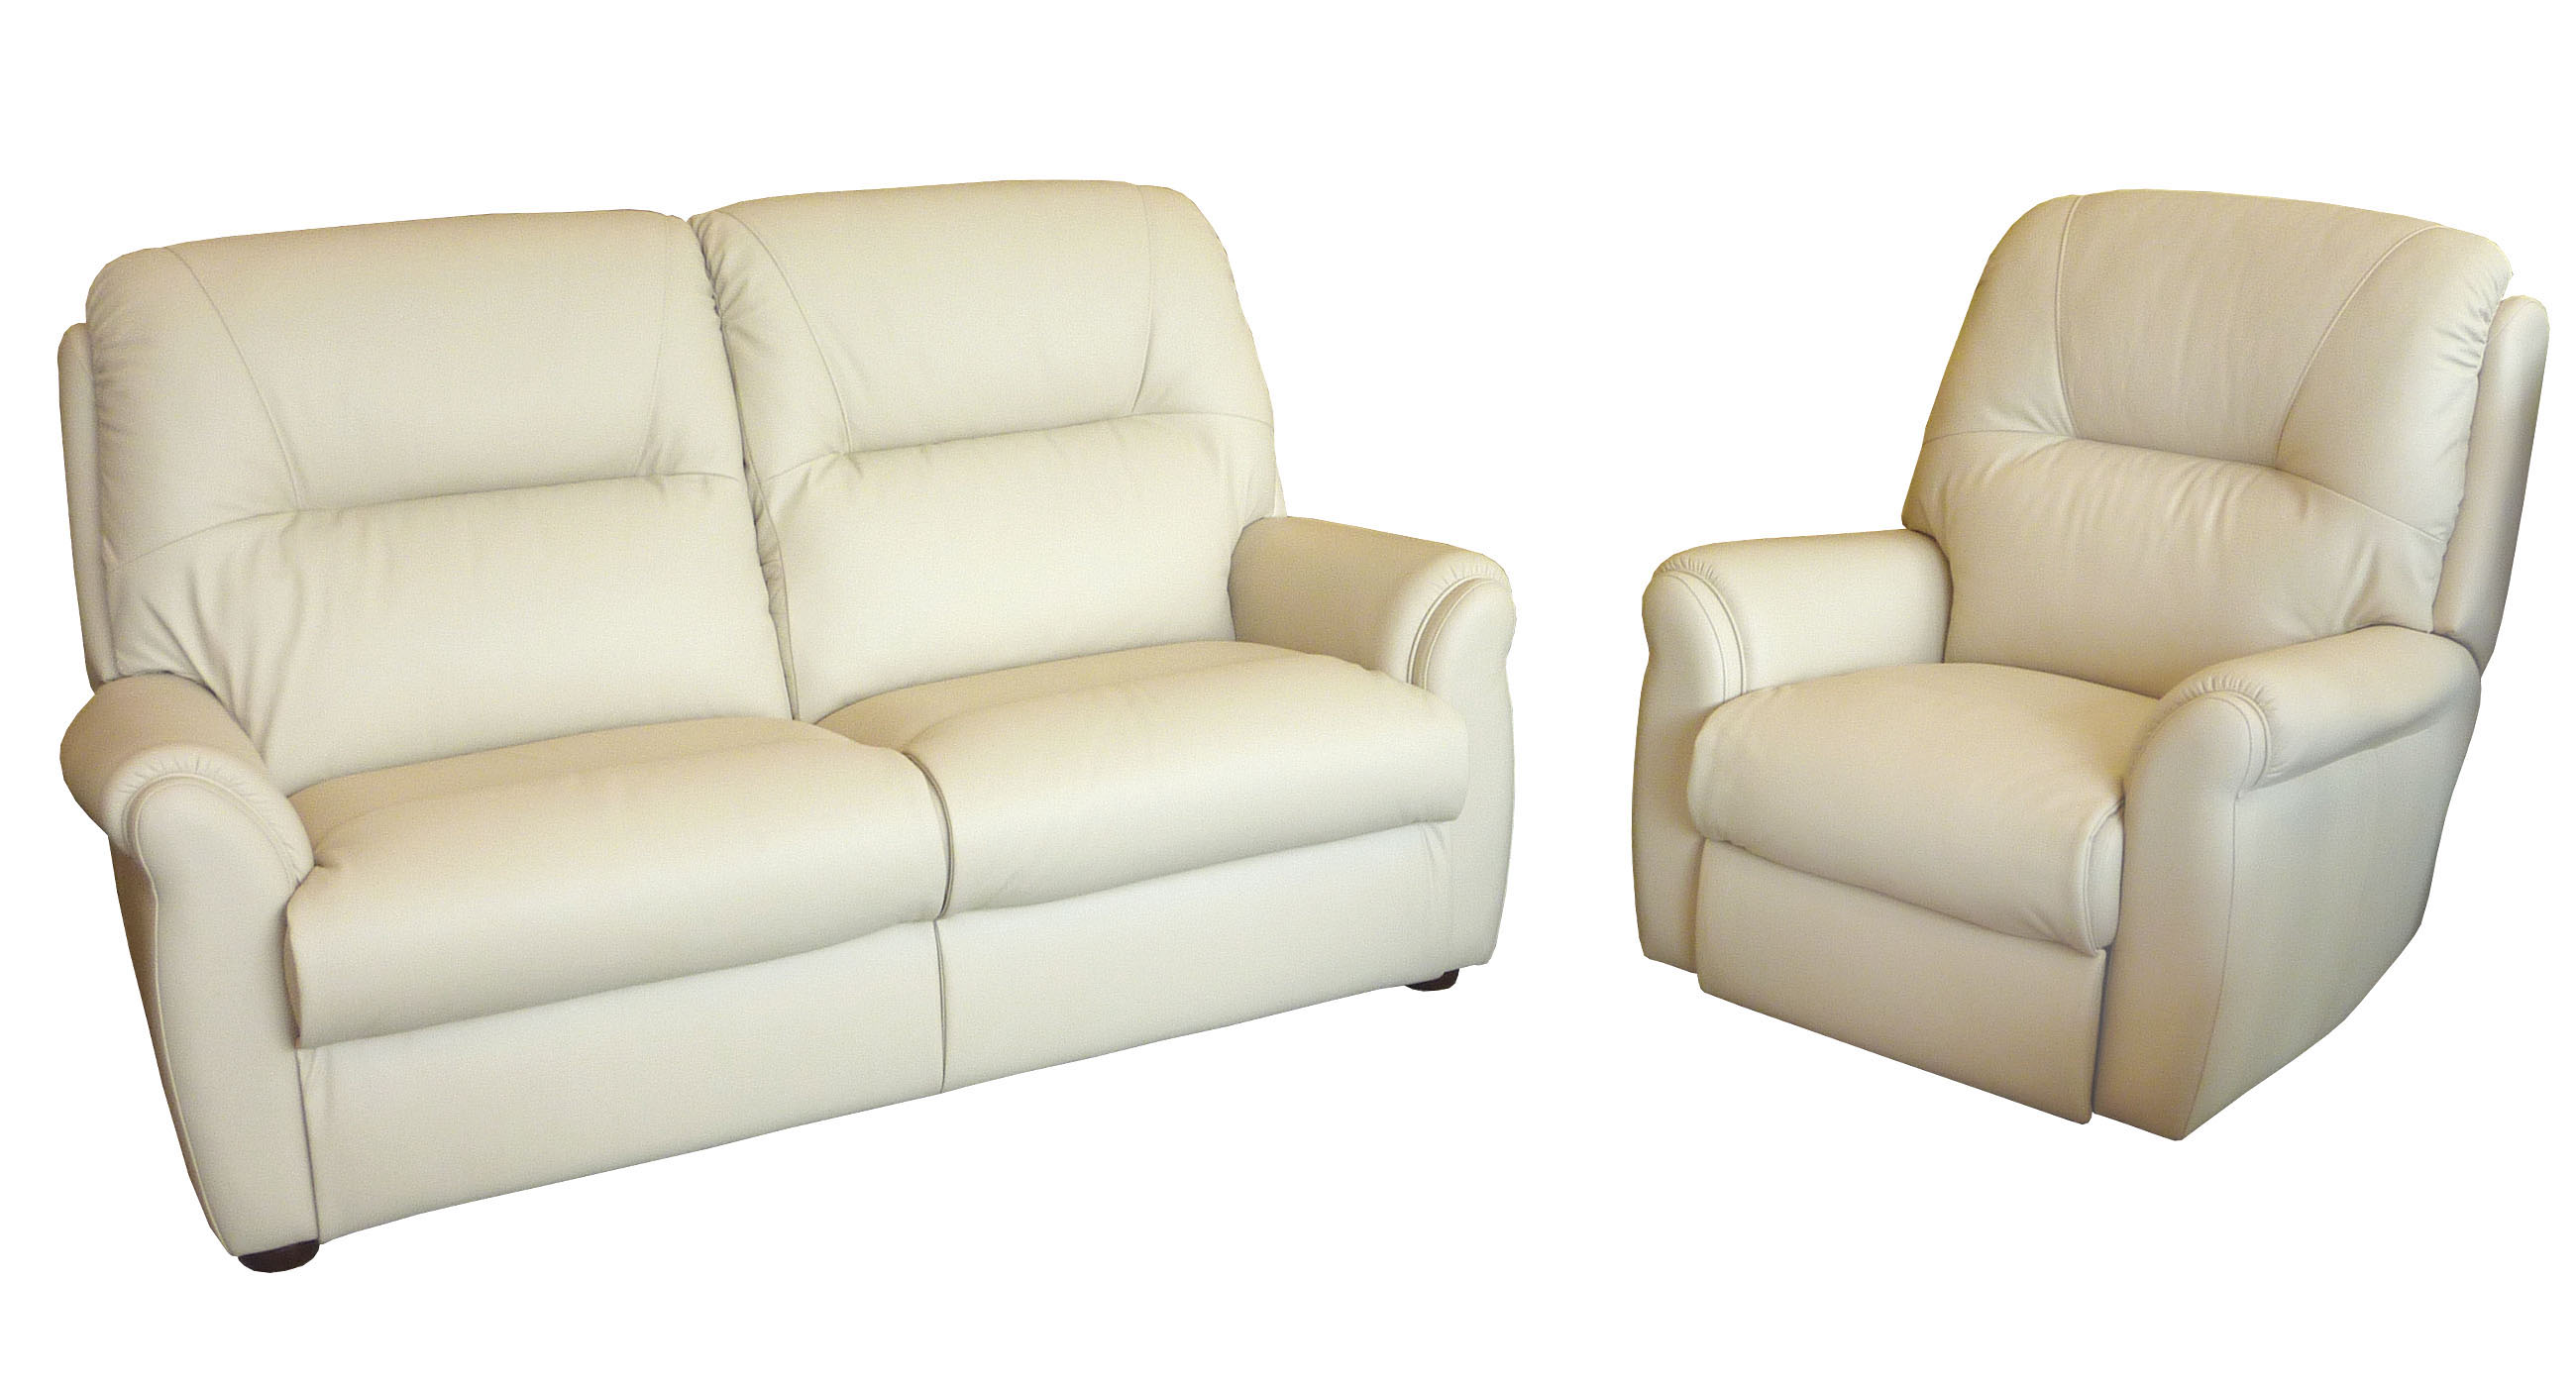 Bailey Reclining Sofa and Chairs